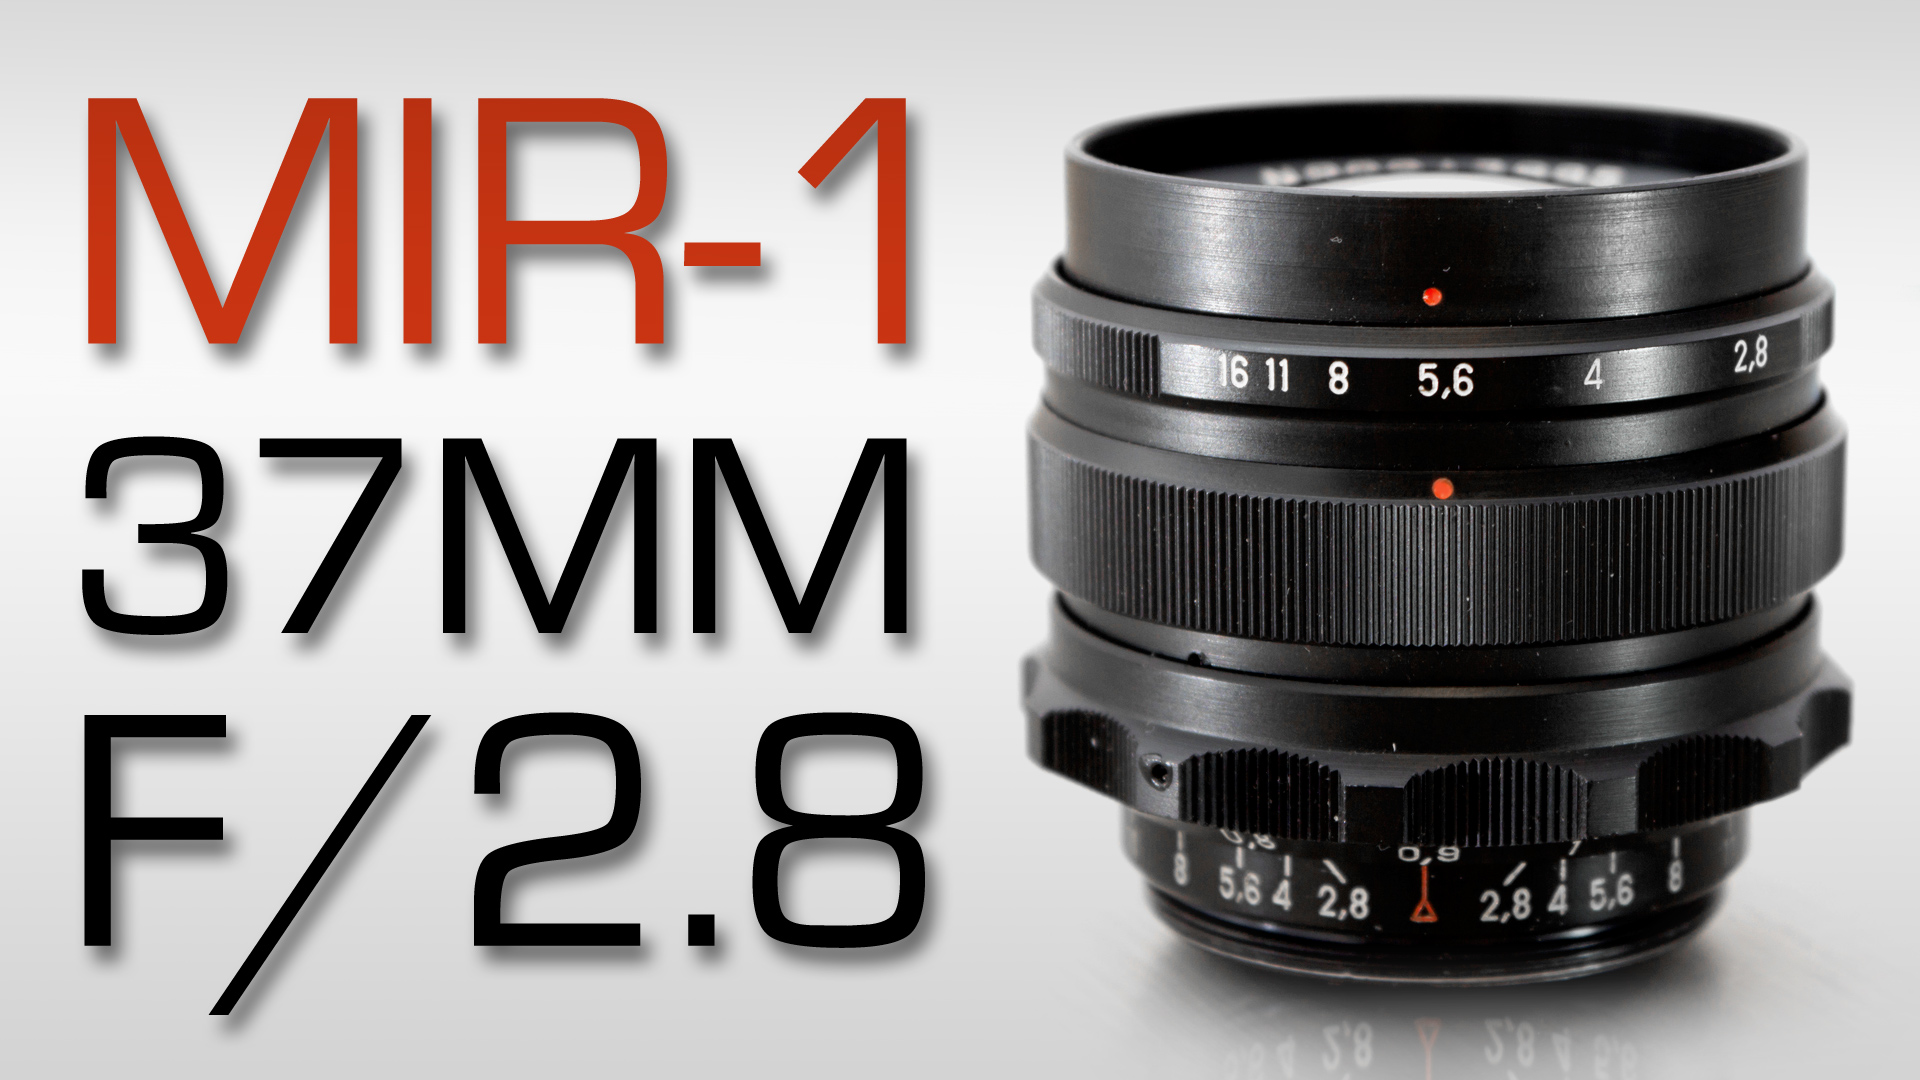 MIR-1 37mm F/2.8 REVIEW + TEST FOOTAGE